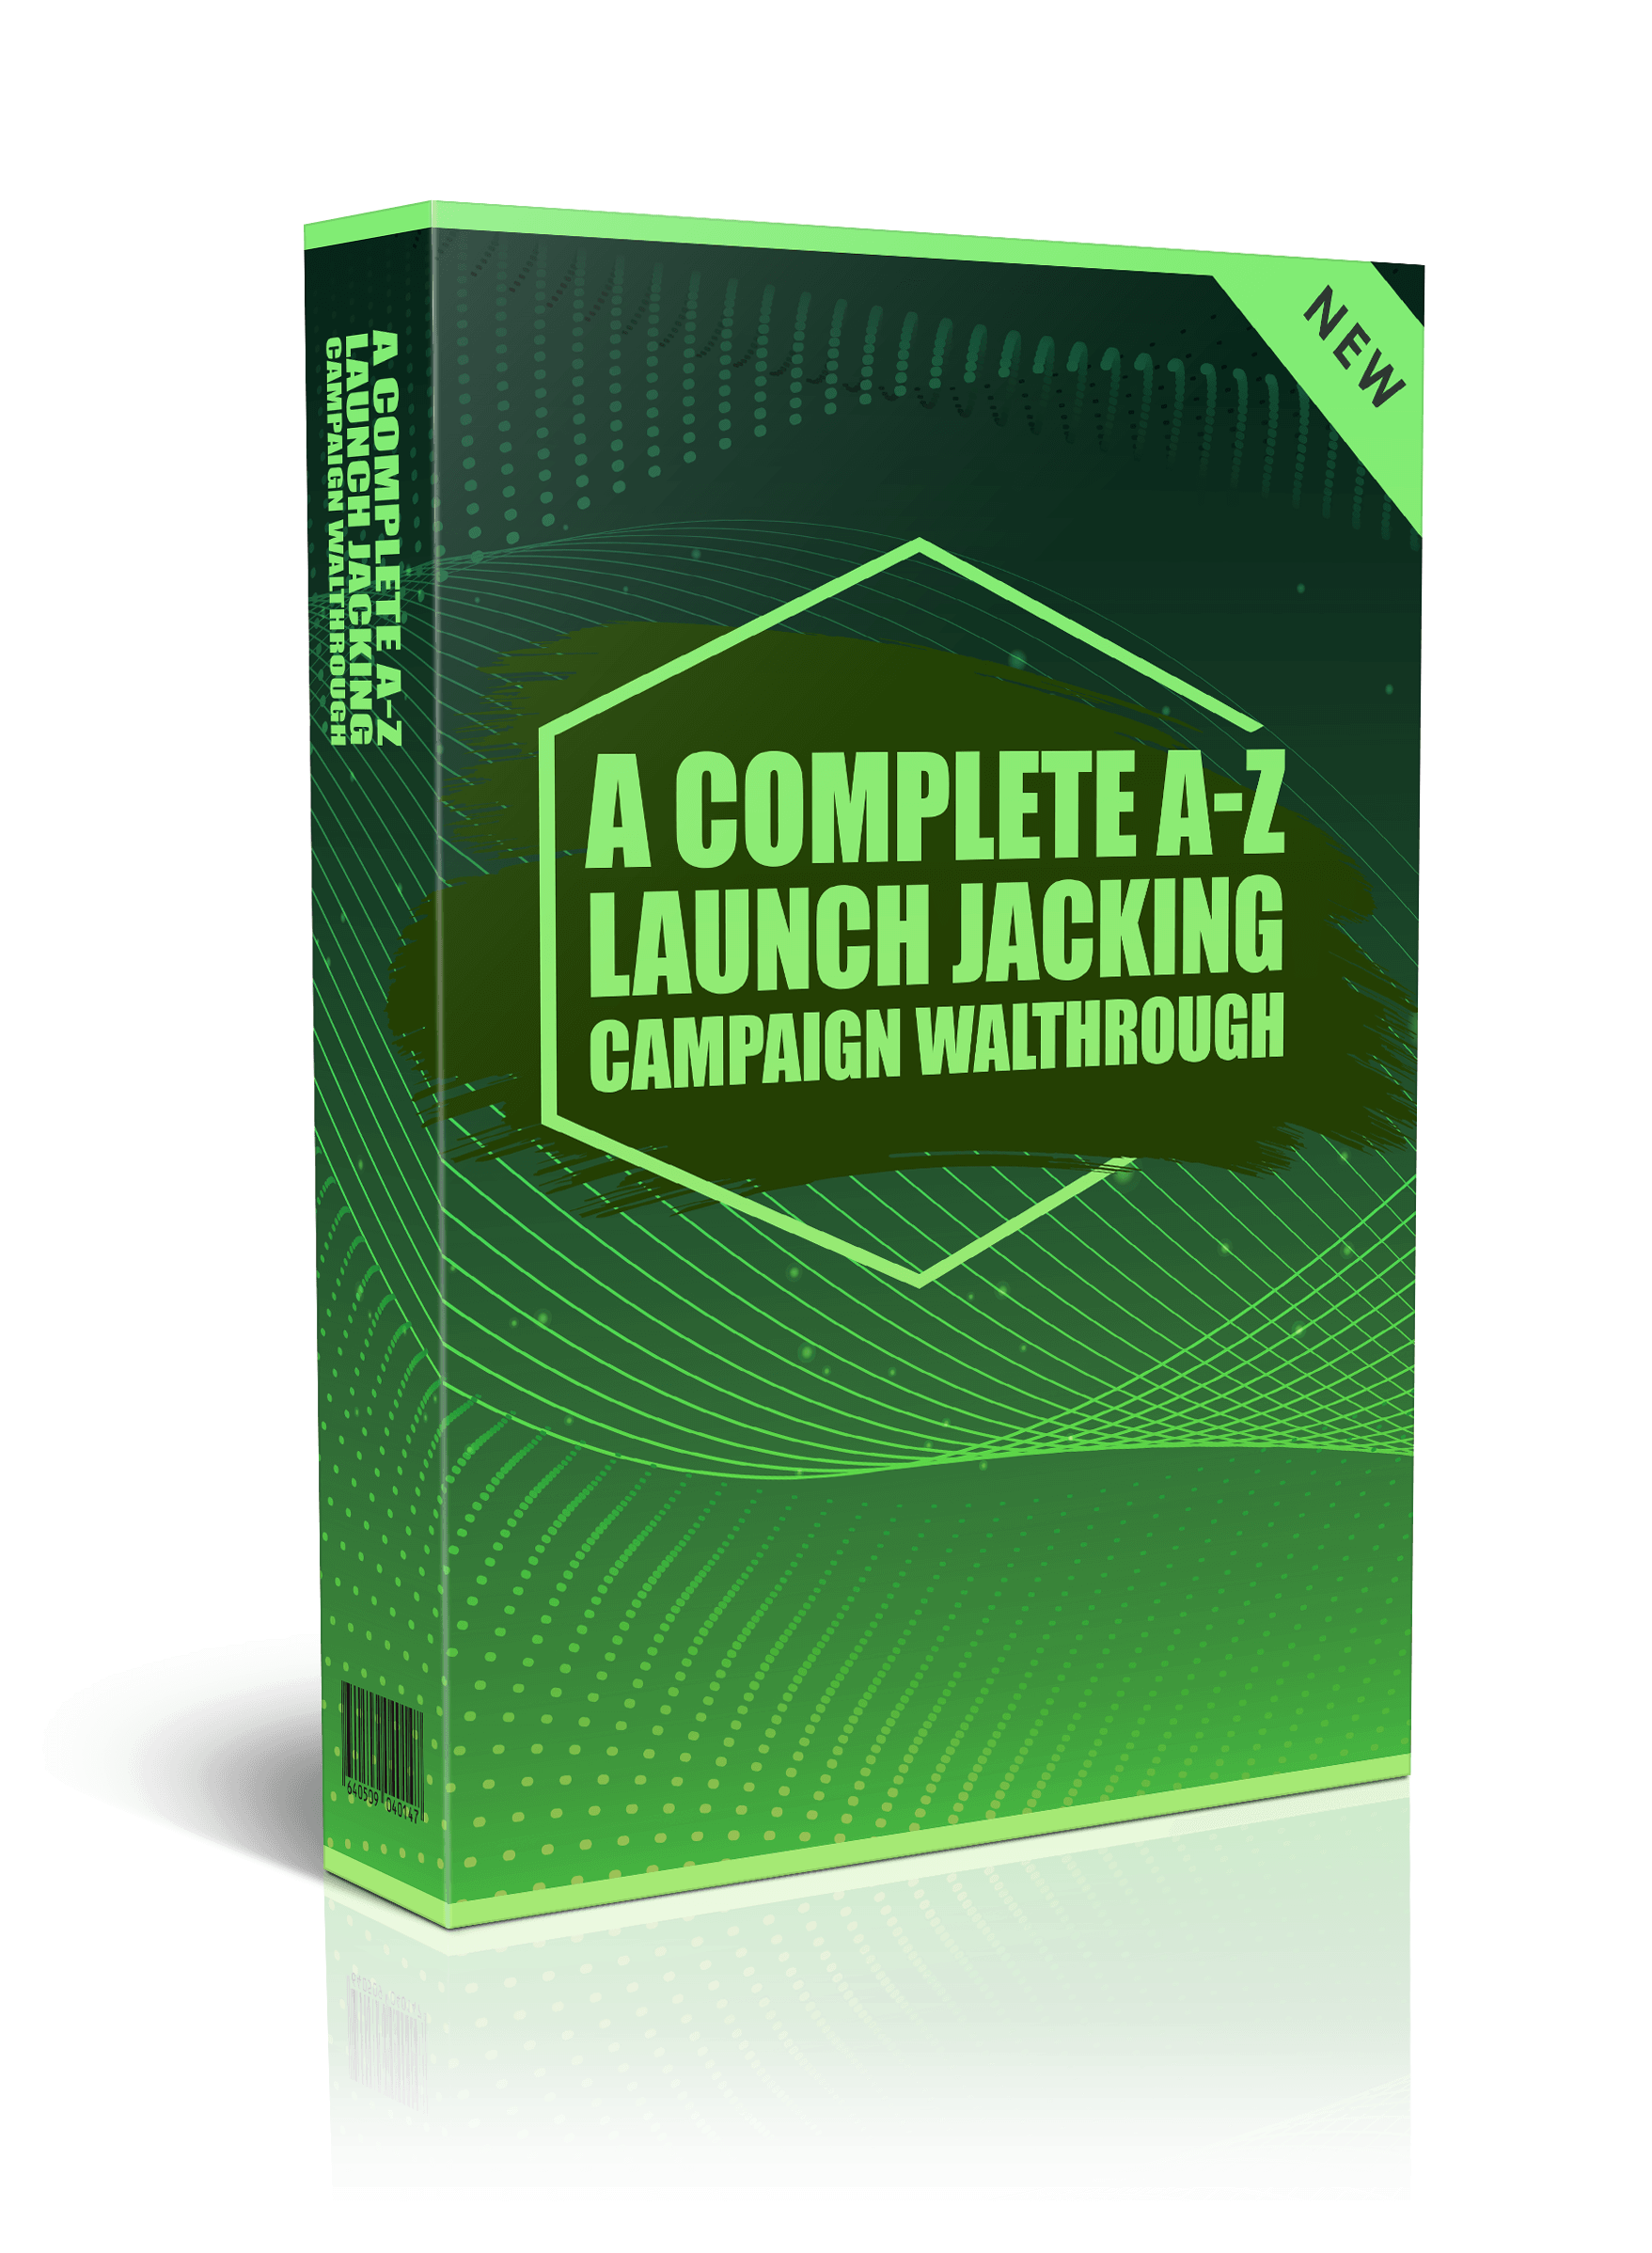 21. A-complete-A-Z-Launch-Jacking-Campaign-Walthrough_boxcover